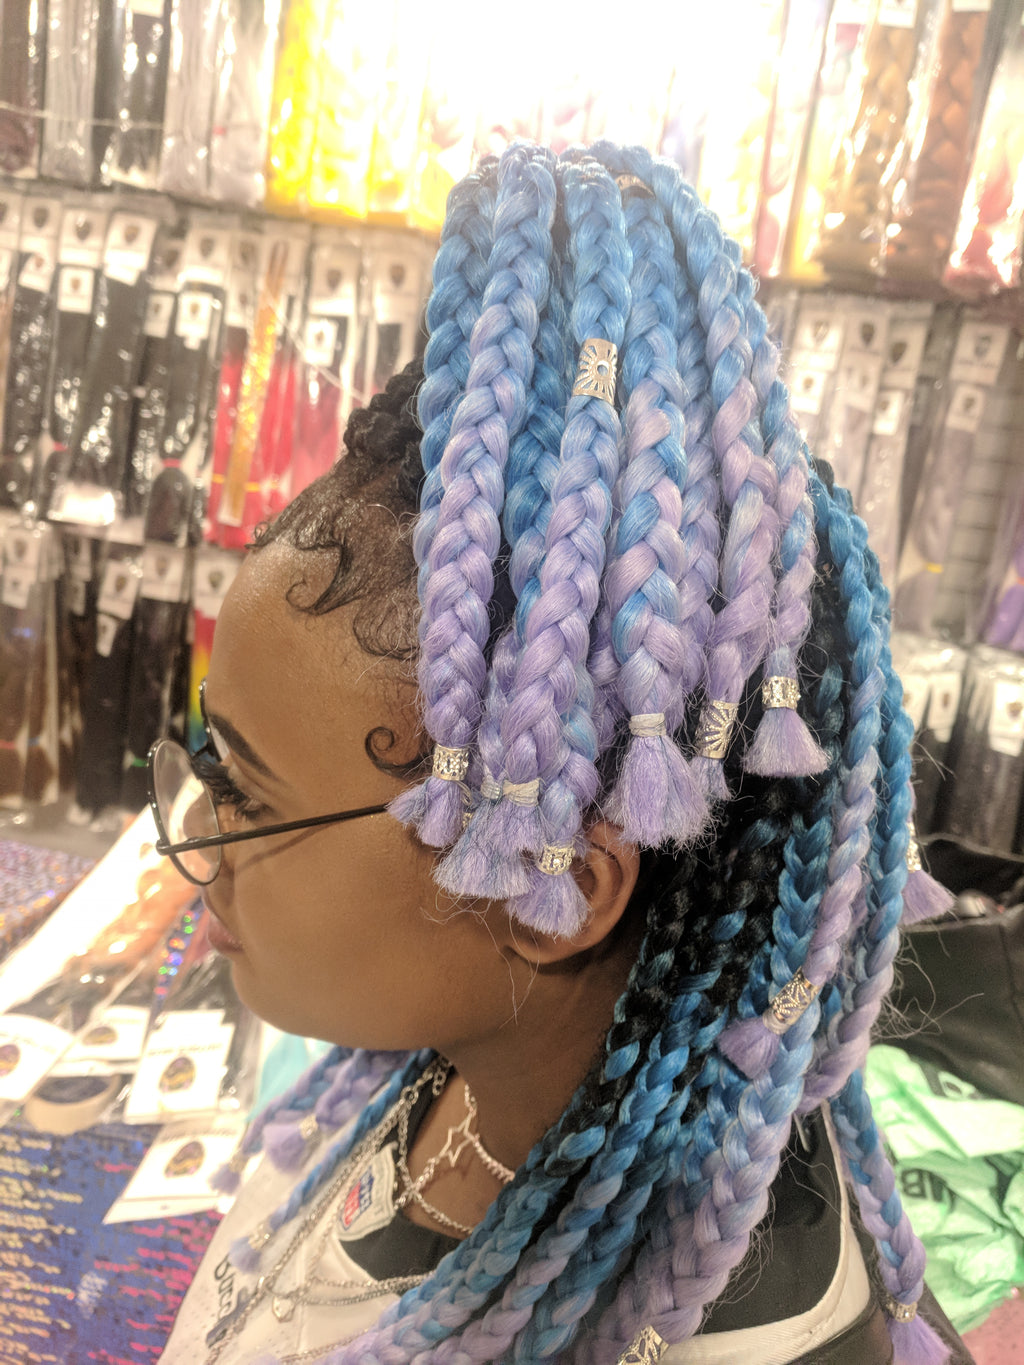 CATFACE HAIR: 3 TONE BABY BERRY CRUSH OMBRE -  16 INCHES HAIR EXTENSIONS - BOXBRAIDS, ROPE TWISTS